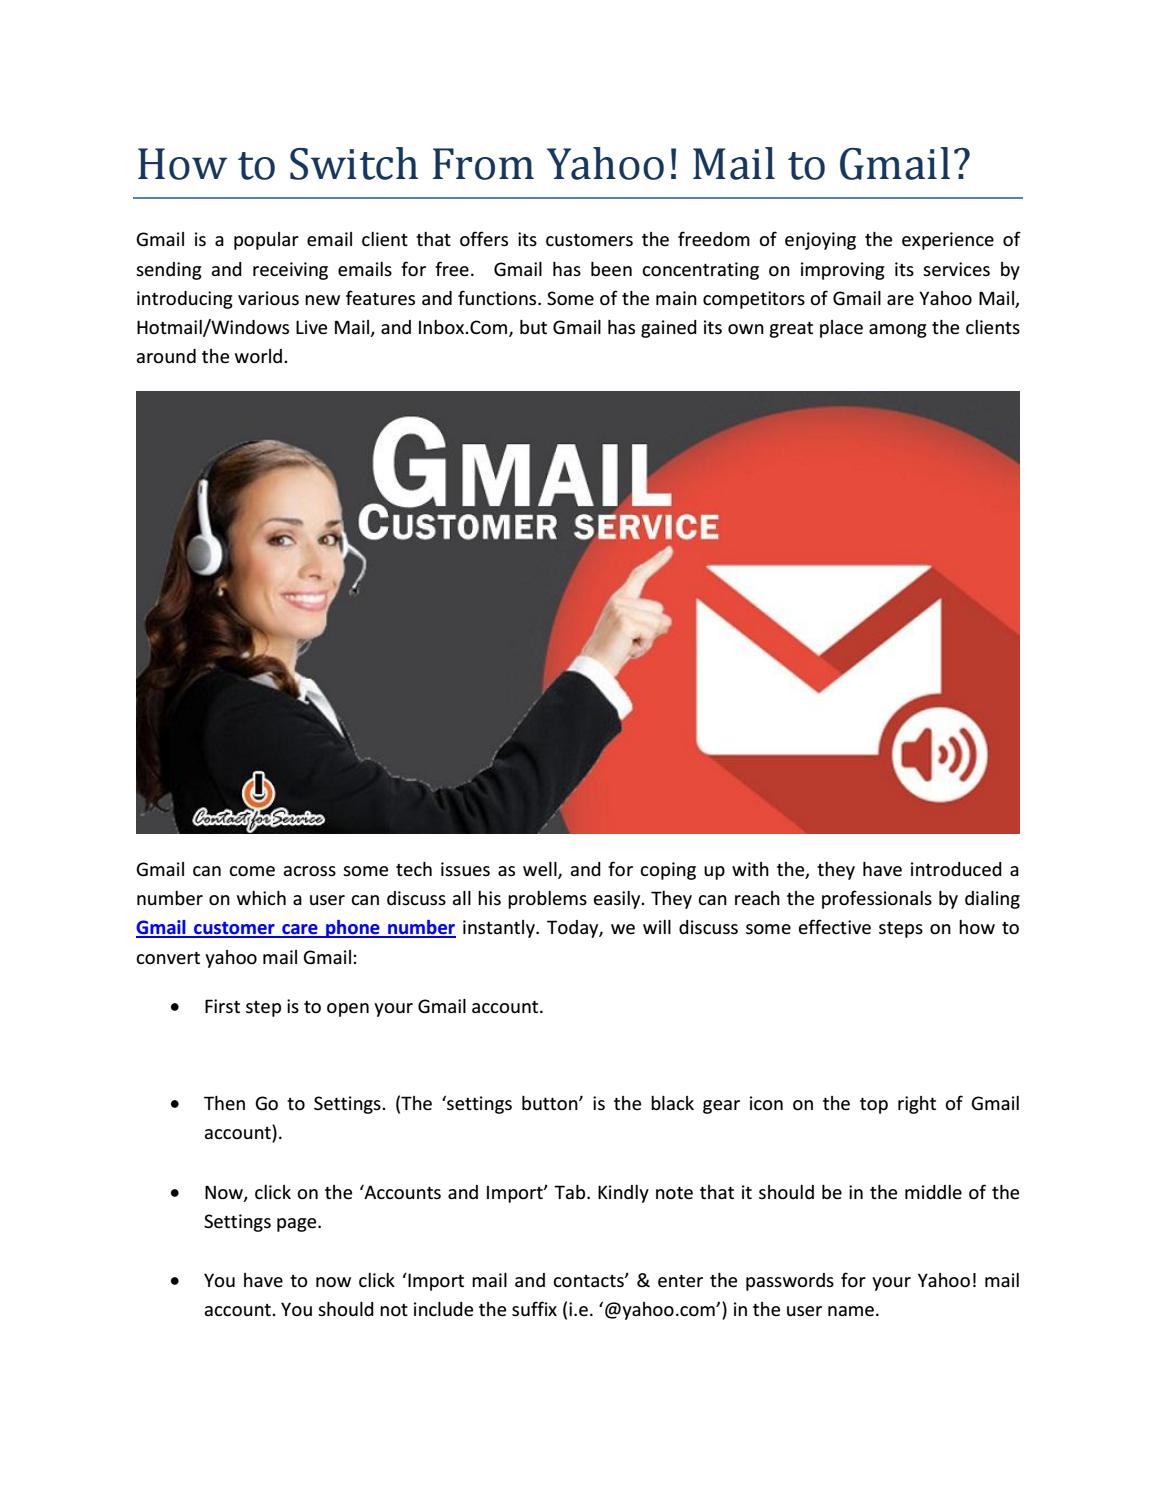 How to Switch From Yahoo! Mail to Gmail? by JonCarton - issuu